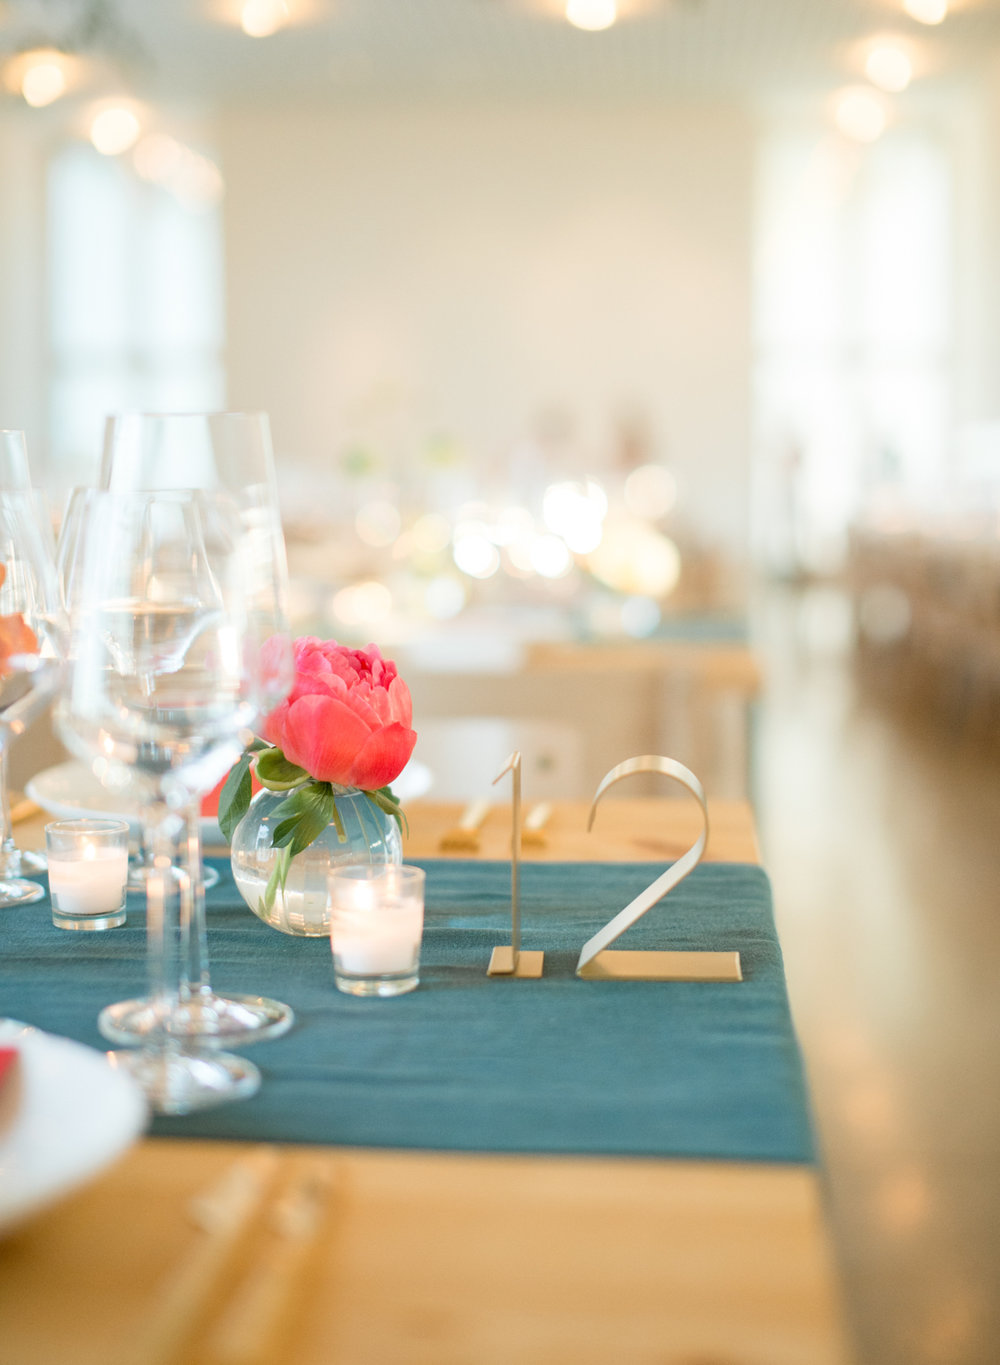 PROSPECT_HOUSE_WEDDING_AUSTIN_TX_BY_MATTHEW_MOORE_PHOTOGRAPHY_00548.jpg